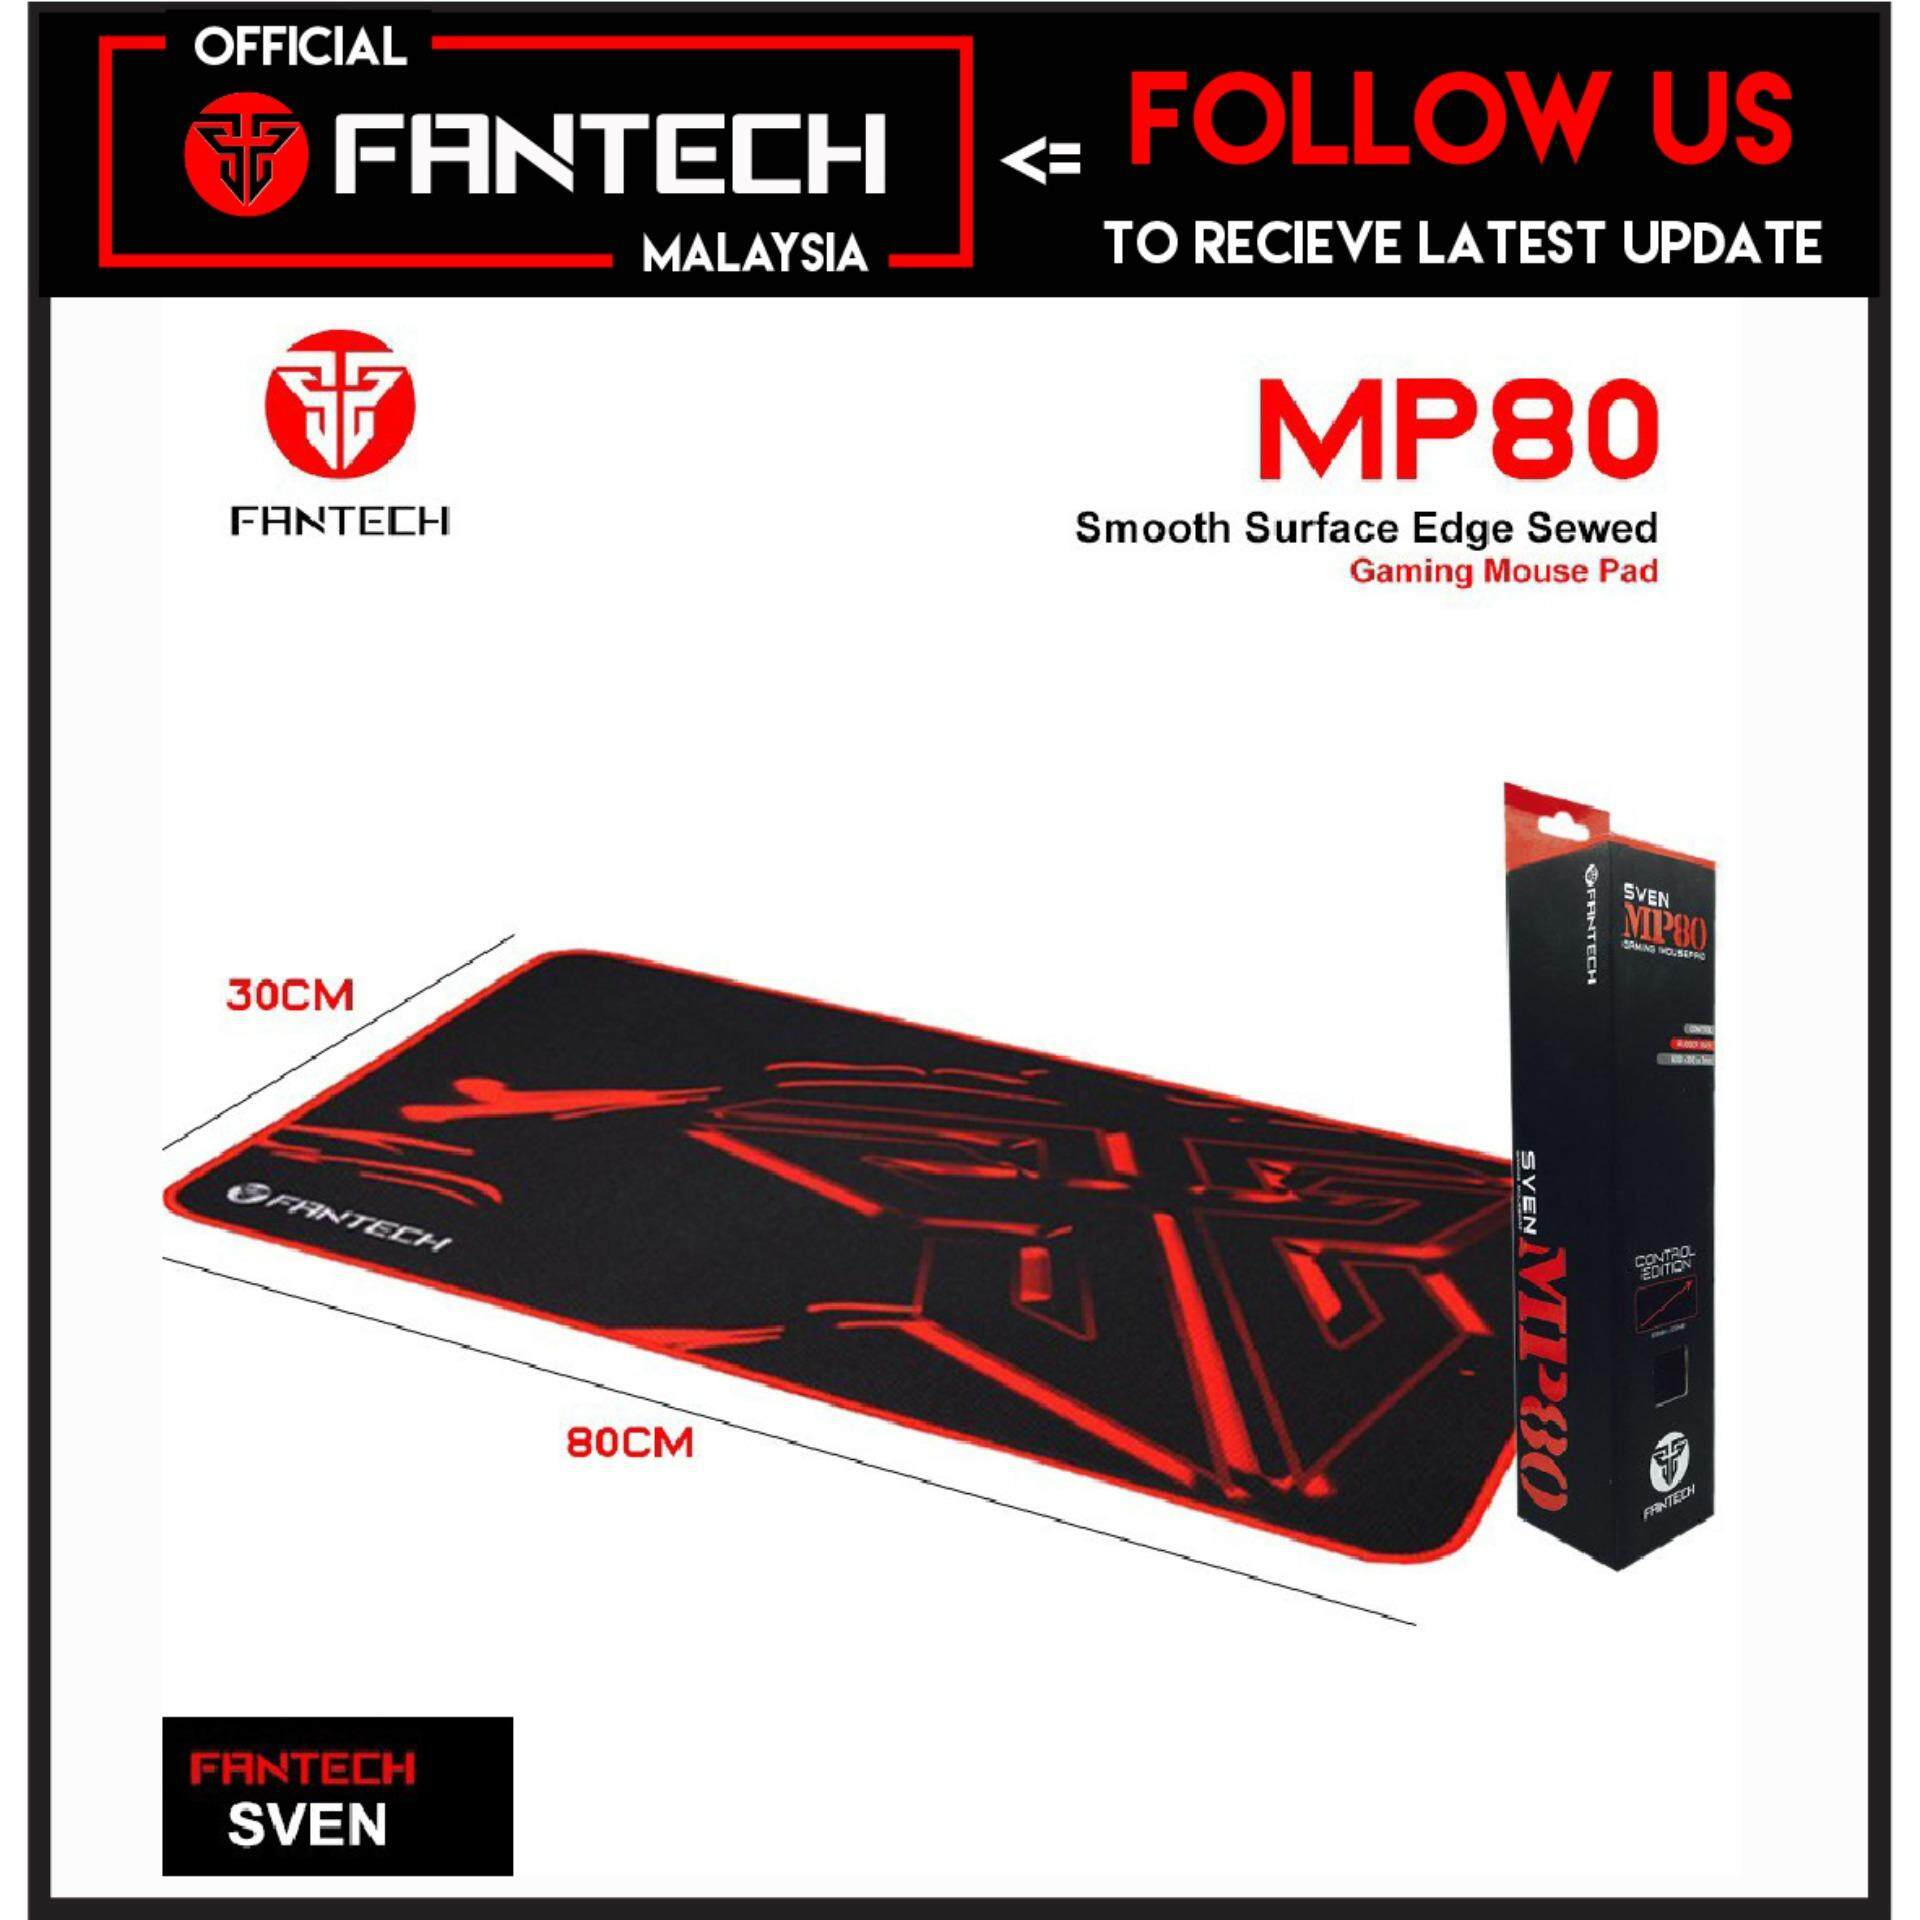 100% Original Fantech SVEN MP80 High Non-Slip Base Gaming Mouse Pad with Edge Sewed (Black mix Red) Malaysia